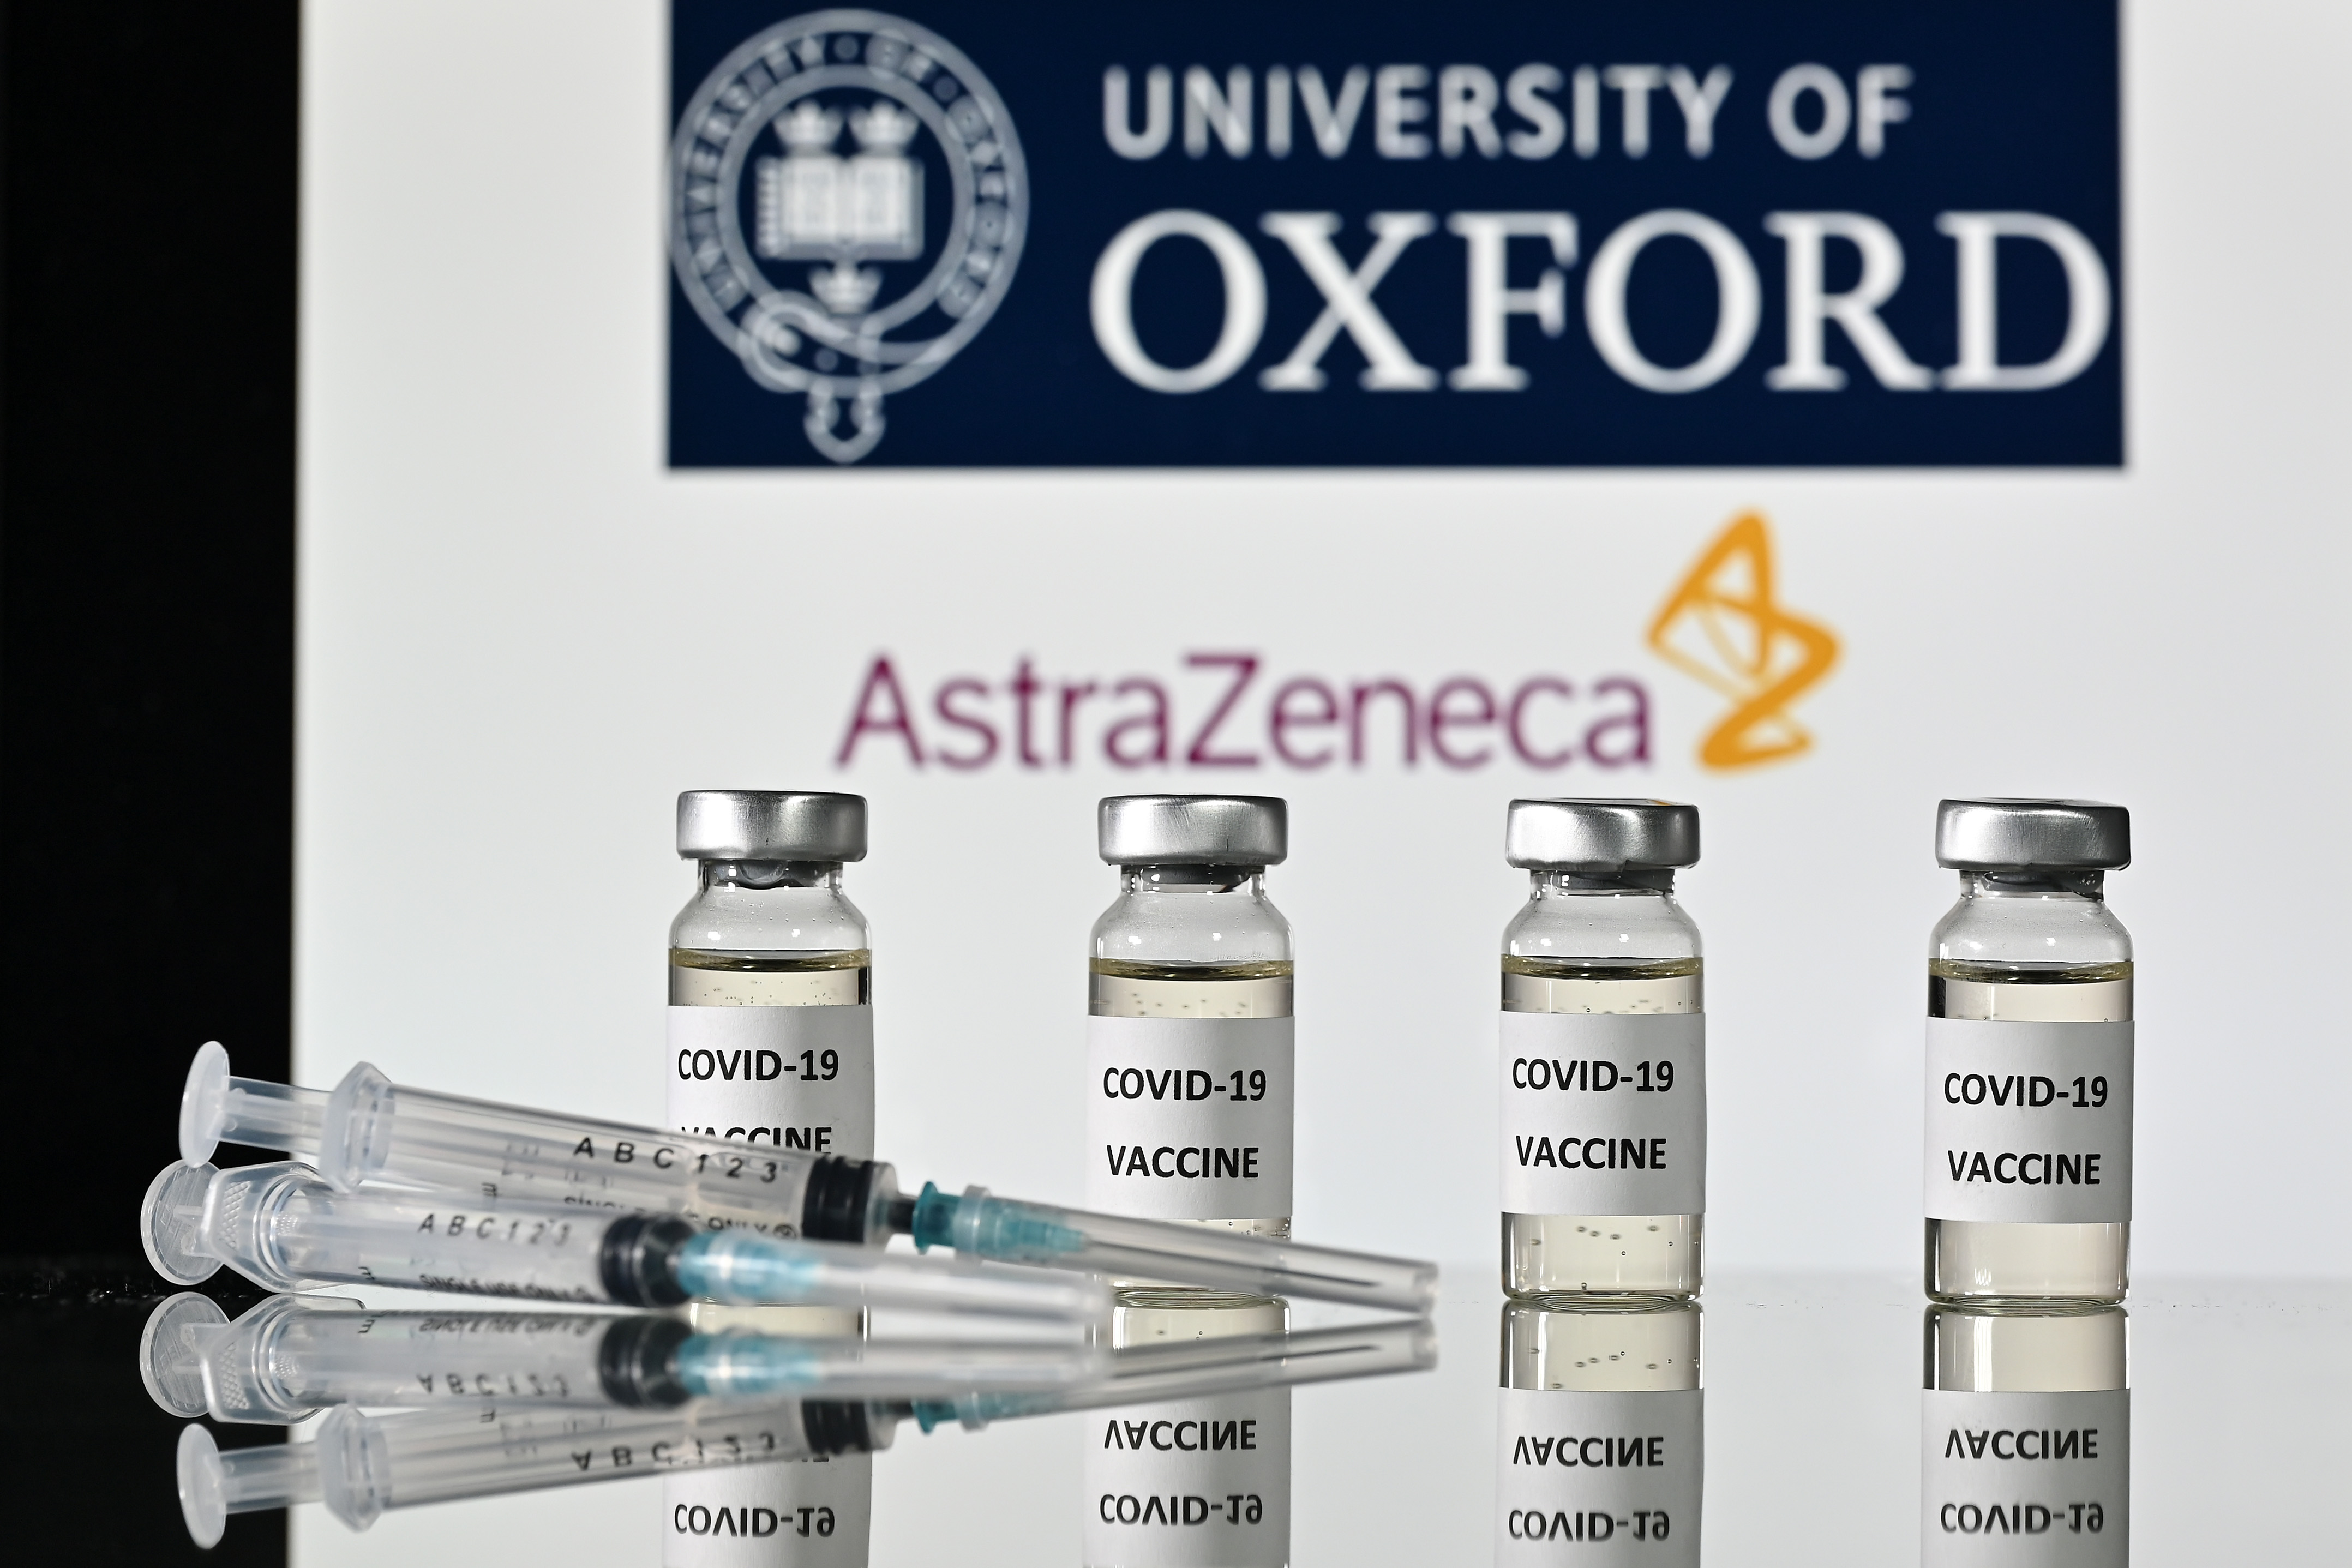 Will Oxford's vaccine bring back normality?